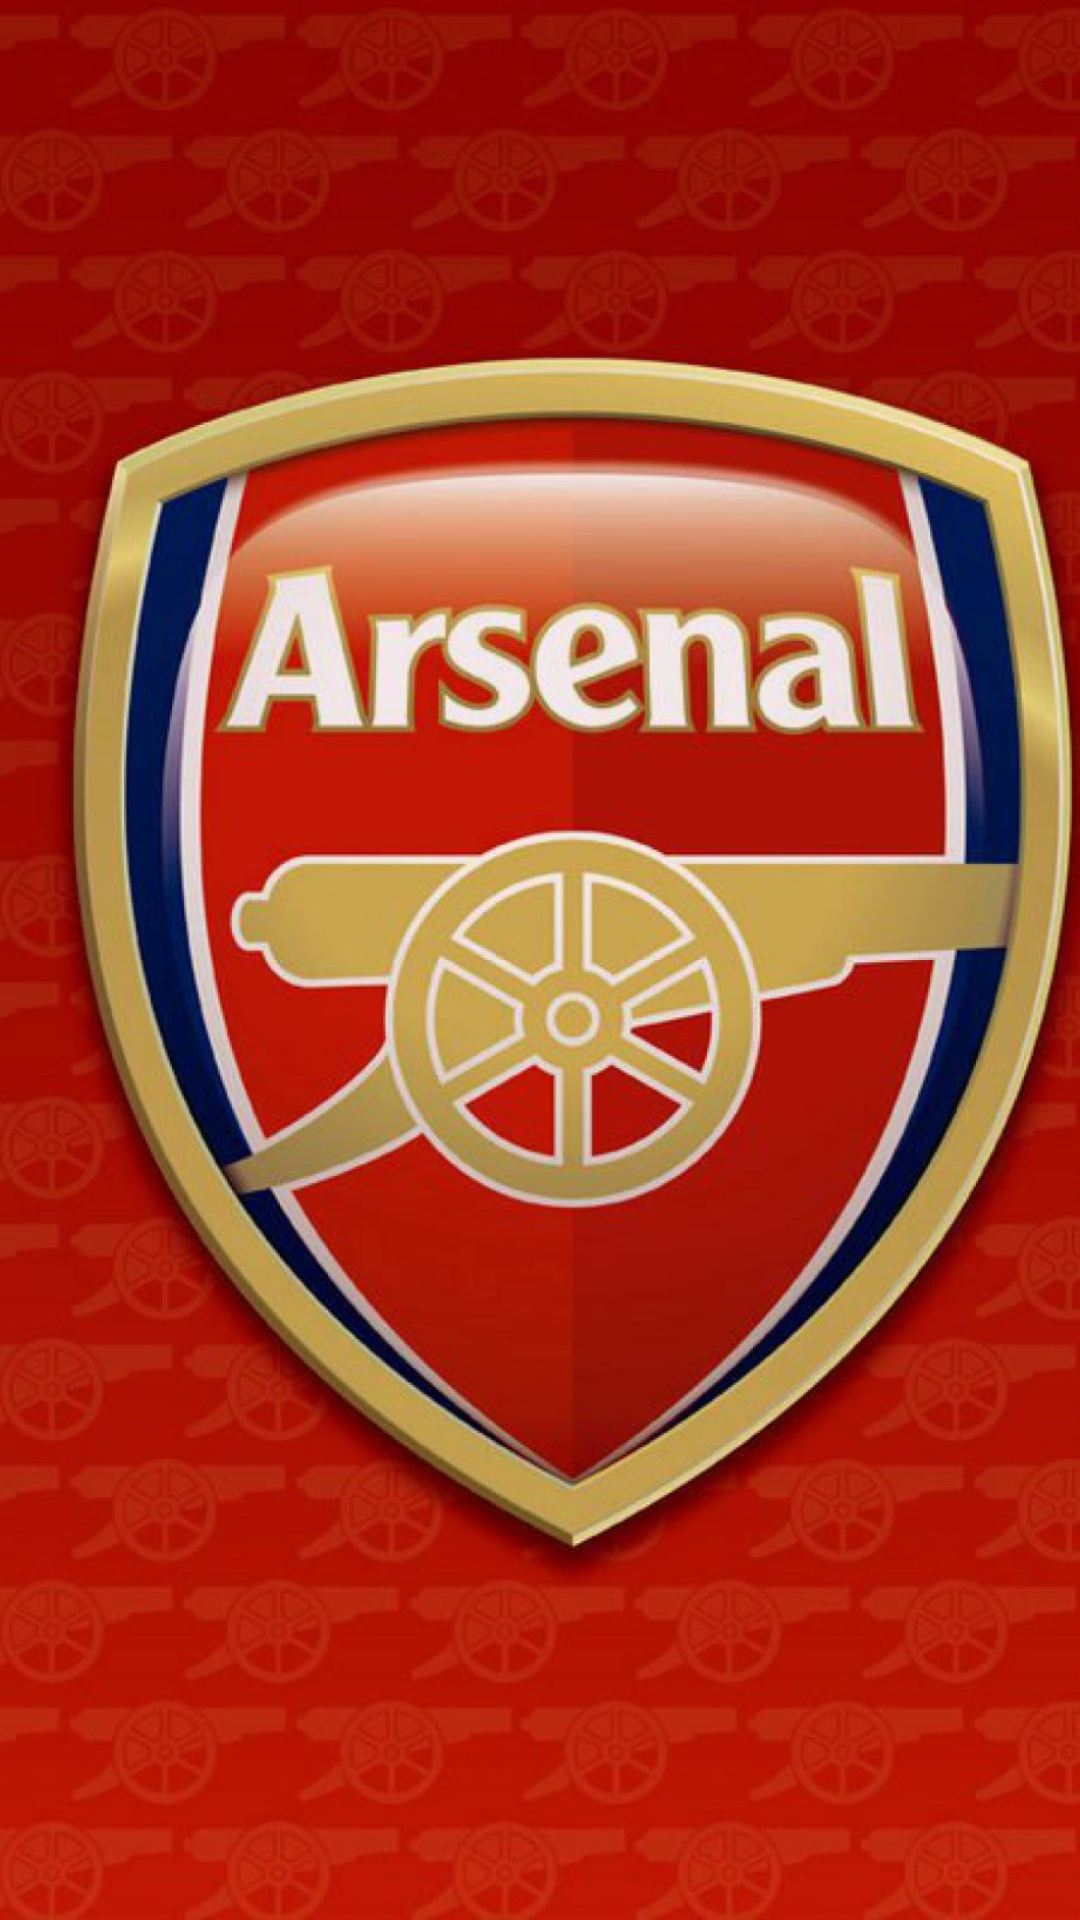 Quotes Wallpaper Hd For Desktop Widescreen Arsenal Logo Hd Wallpaper For Mobile Pixelstalk Net